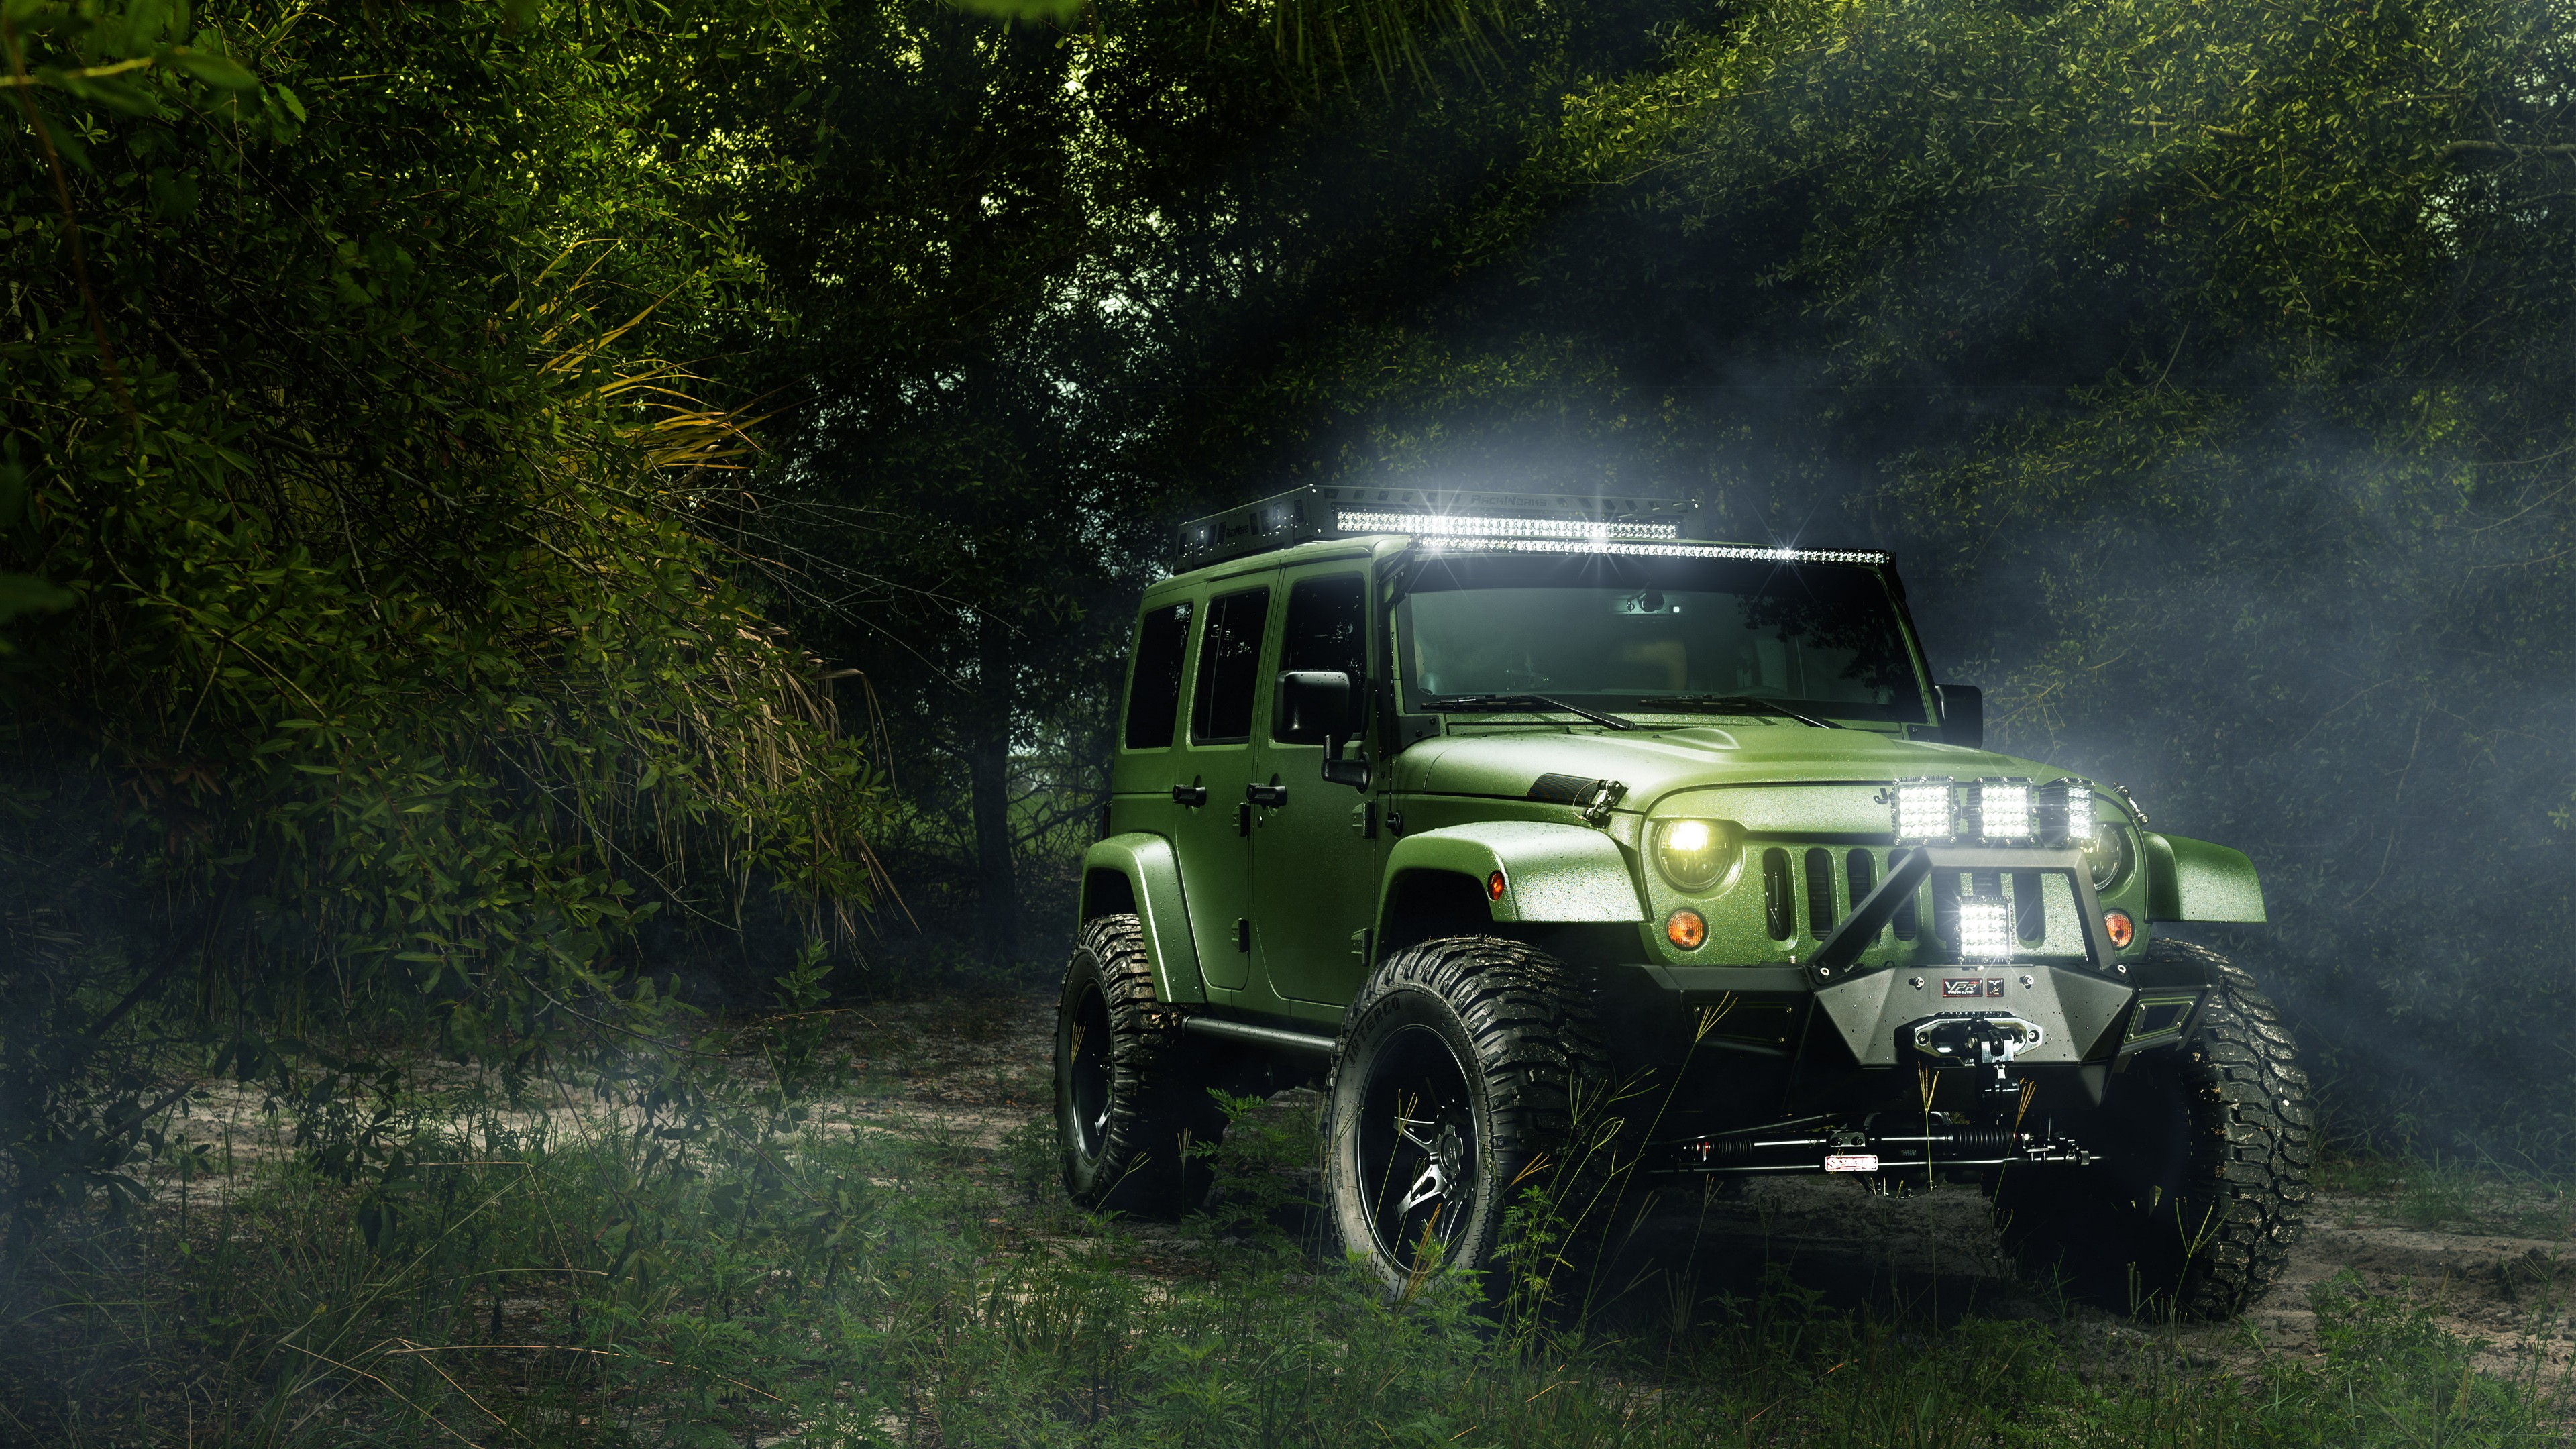 jeep led headlight 1539104500 - Jeep Led Headlight - jeep wallpapers, cars wallpapers